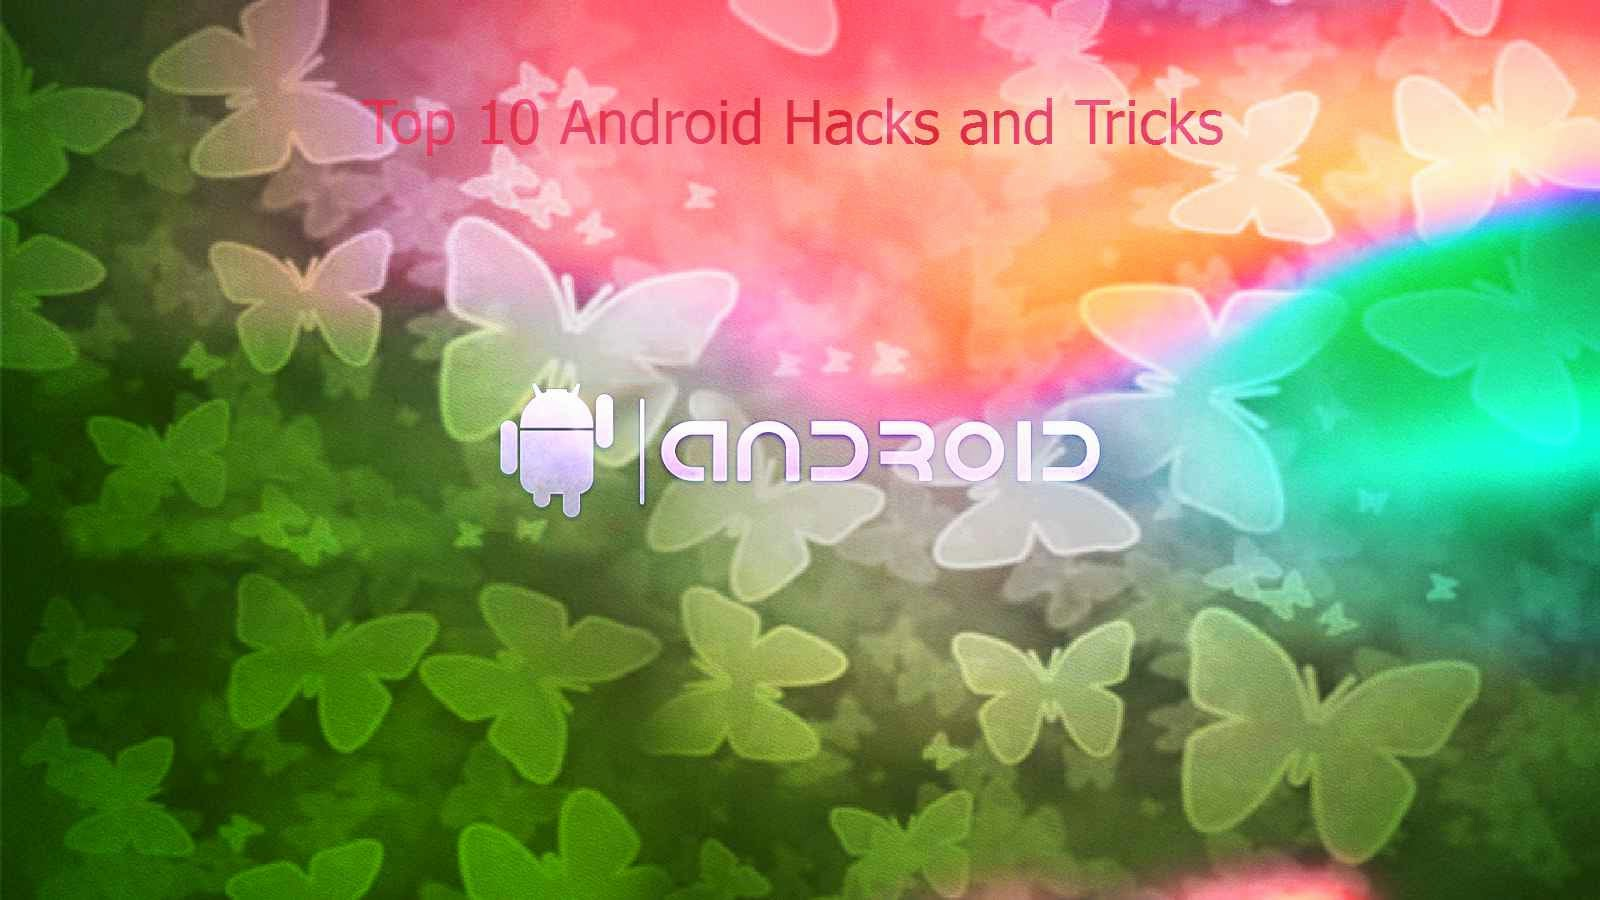 Top 10 Android Hacks and Tricks for Your Android Phone